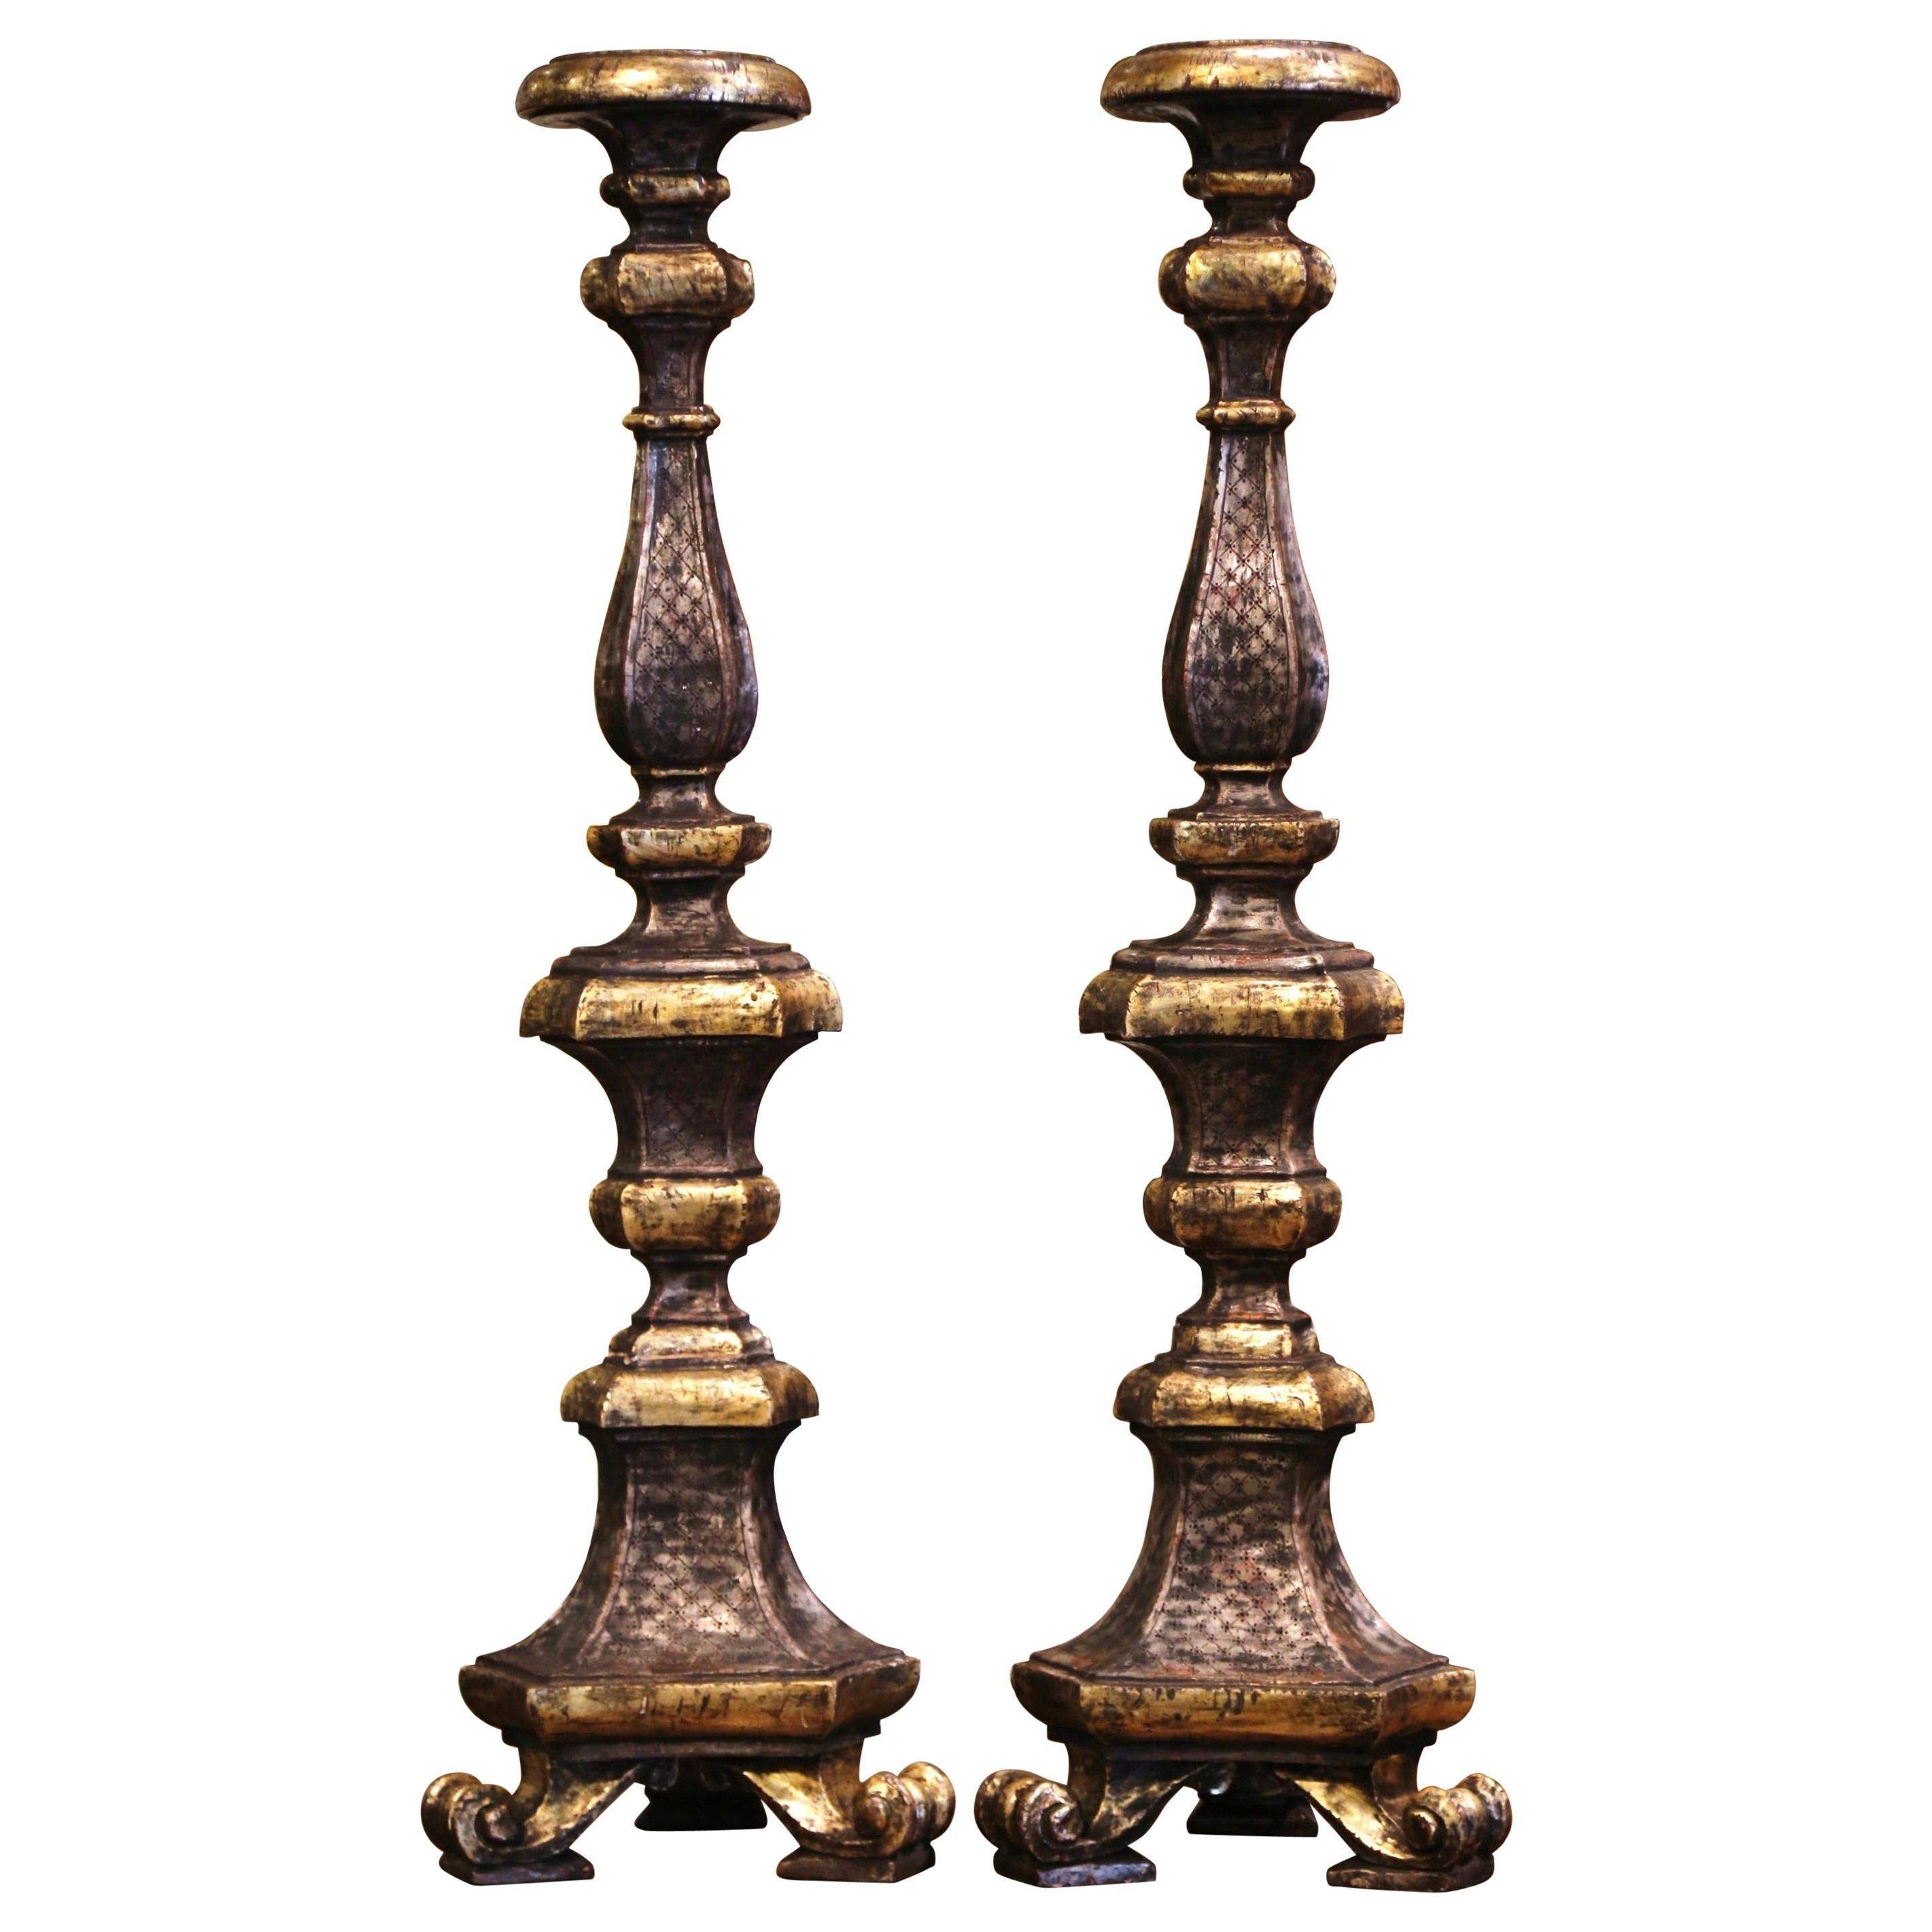 Pair of 19th Century Italian Carved Two-Tone Giltwood Cathedral Candlesticks